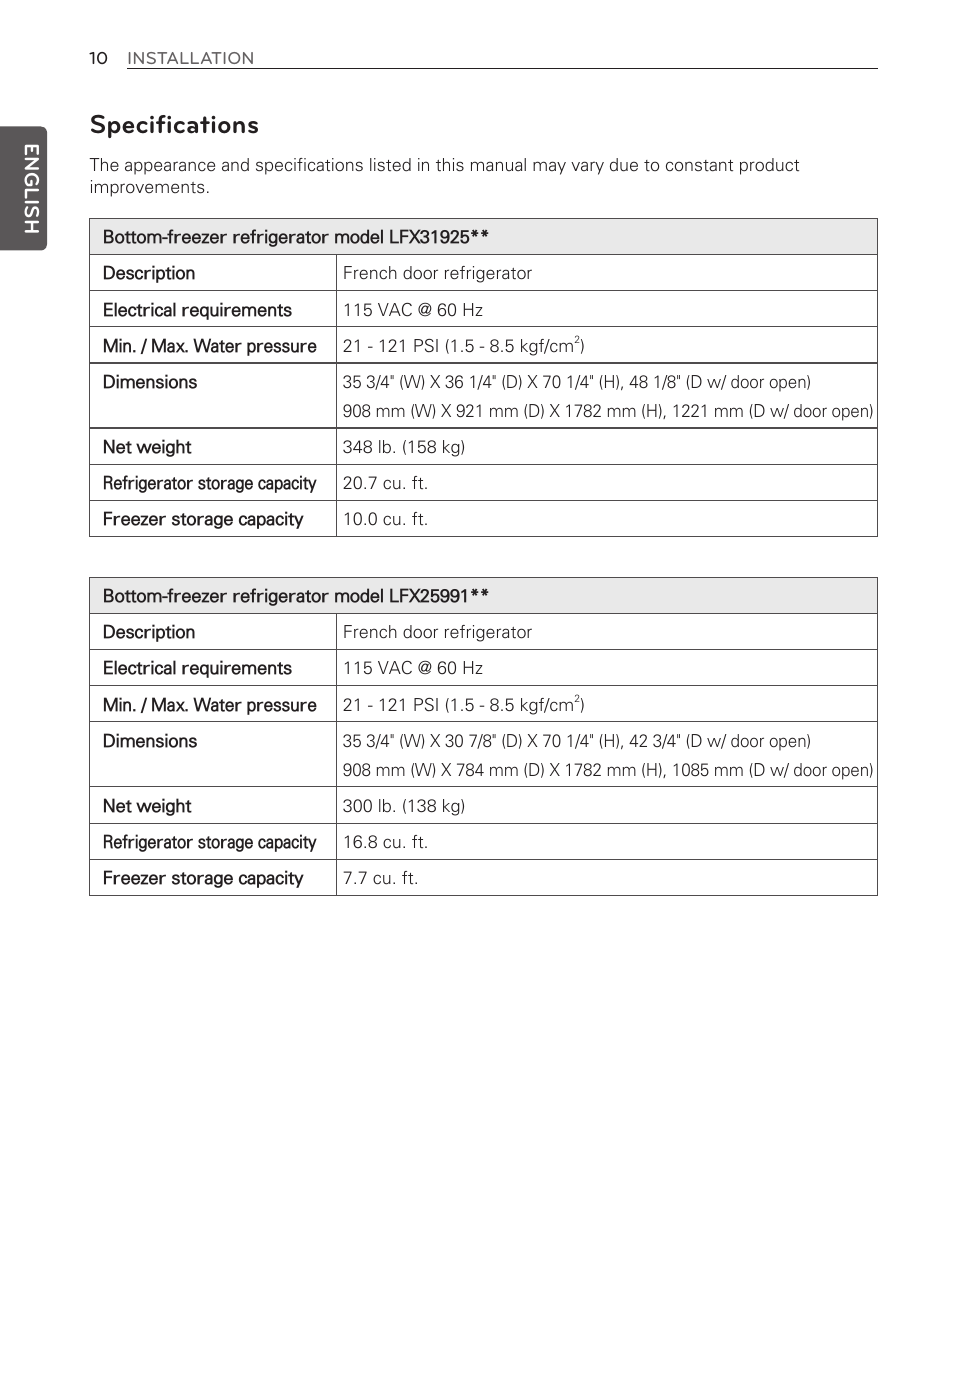 Specifications, English | LG French Door Refrigerator MFL62184416 User  Manual | Page 10 / 61